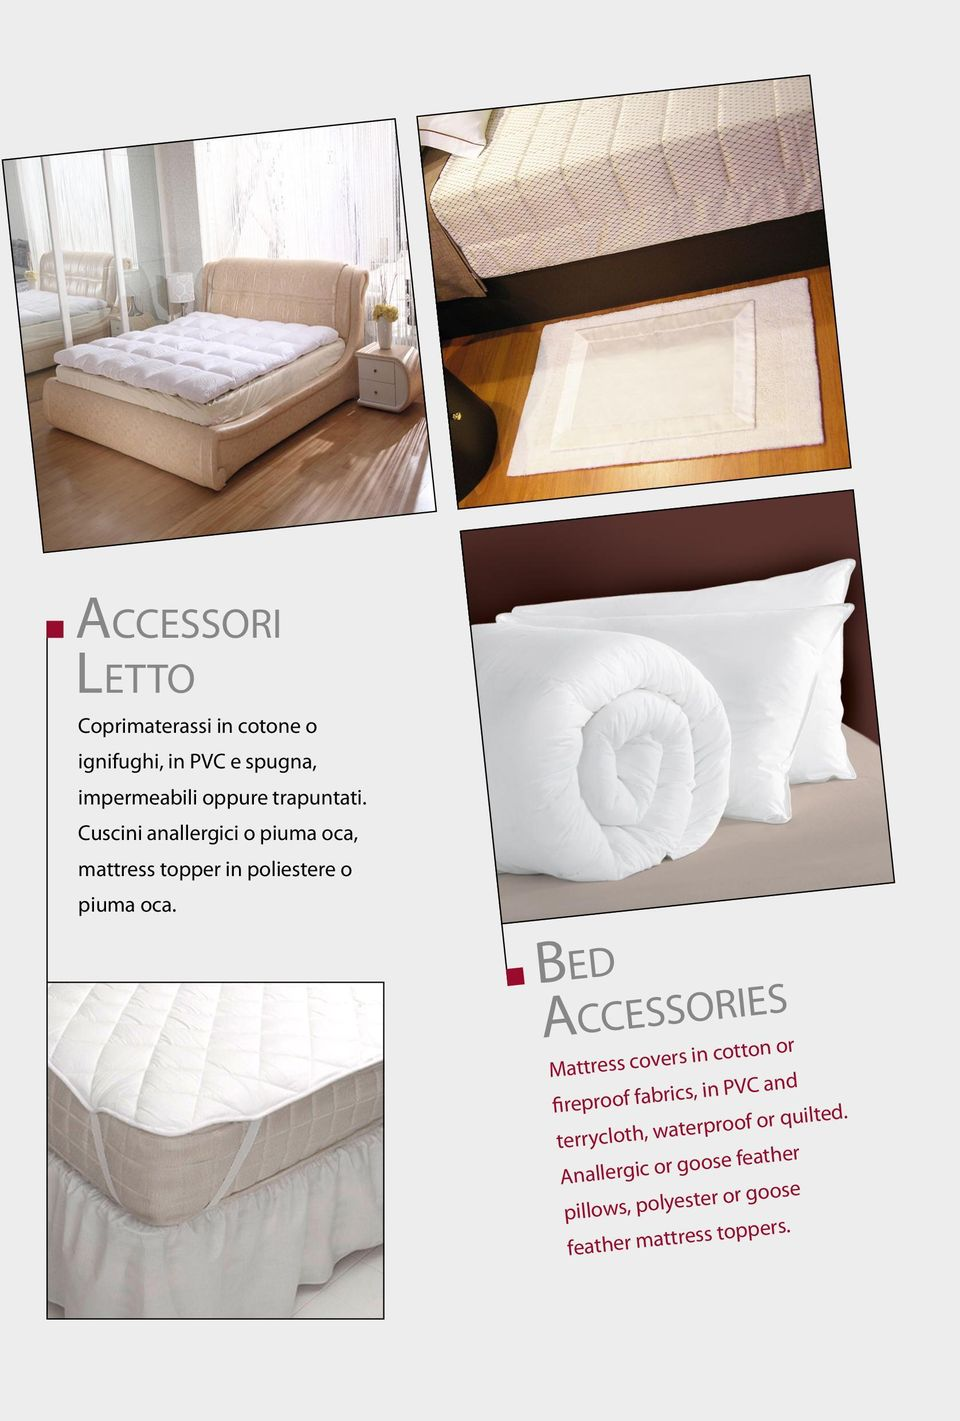 Bed Accessories Mattress covers in cotton or fireproof fabrics, in PVC and terrycloth,